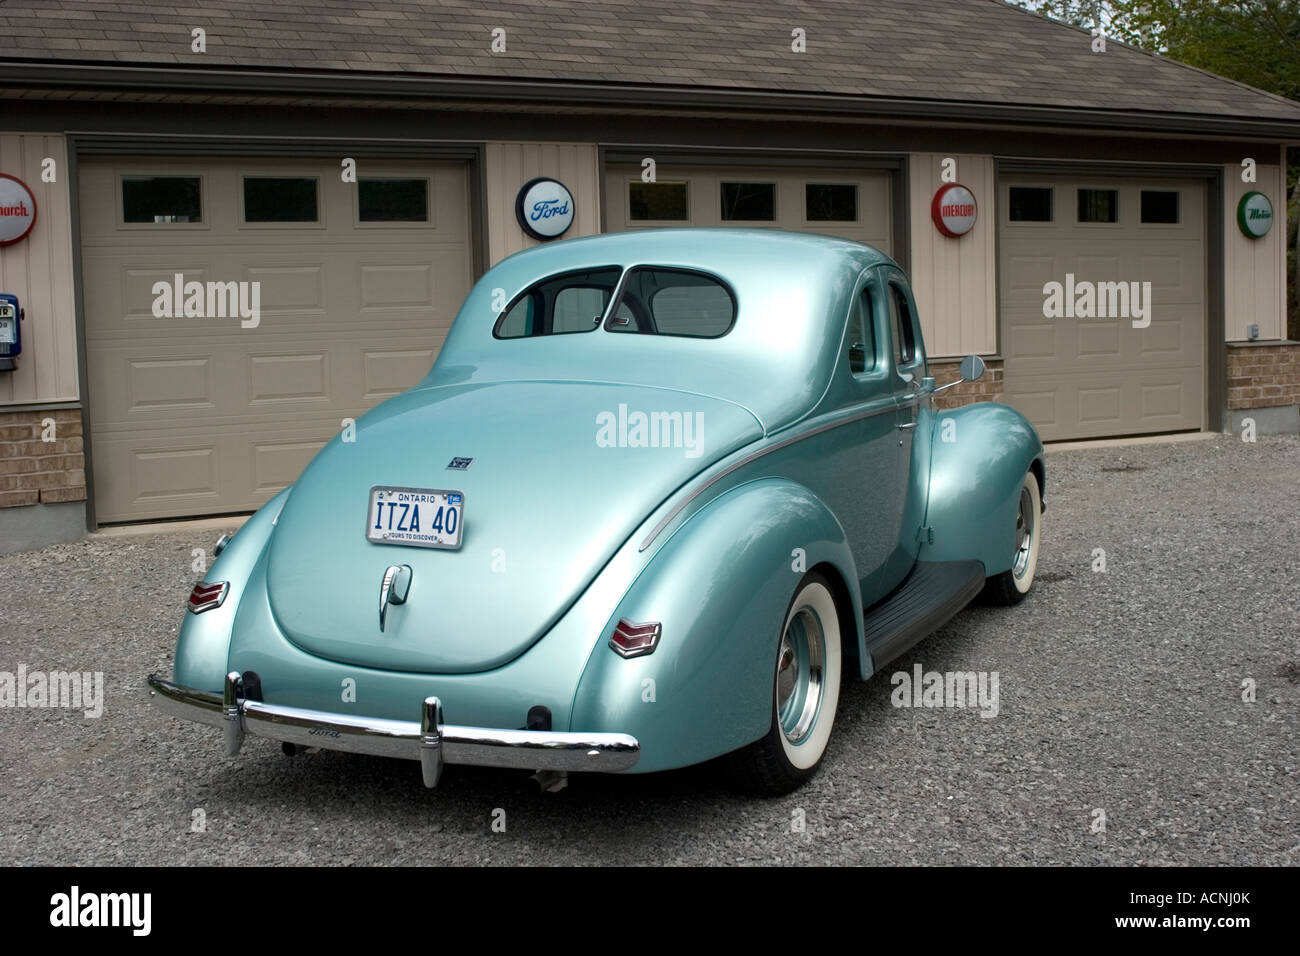 1940 Ford High Resolution Stock Photography And Images Alamy